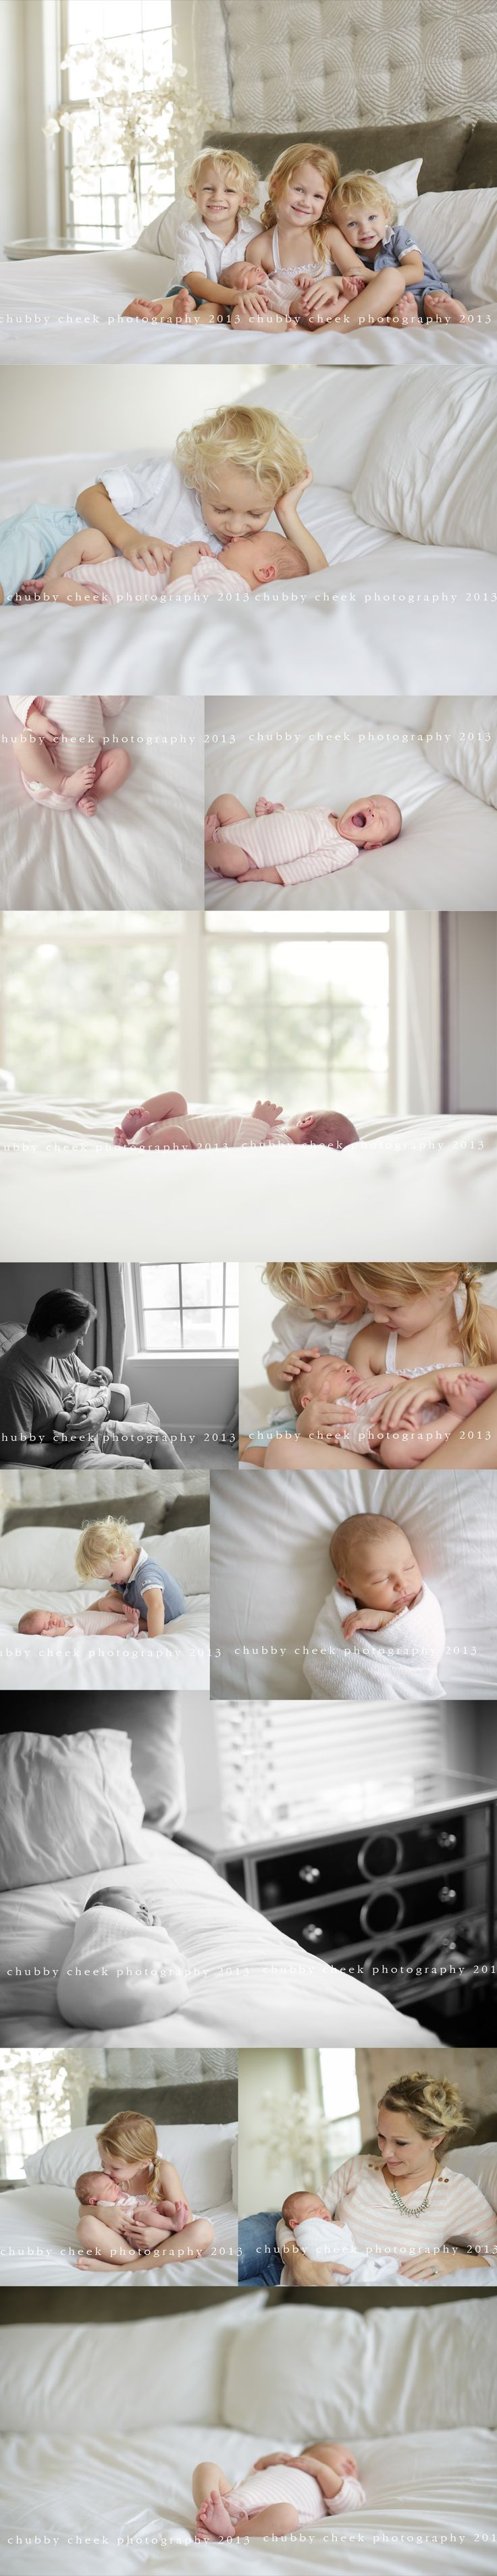 chubby cheek photography newborn photography I am going to have to fam tuis song